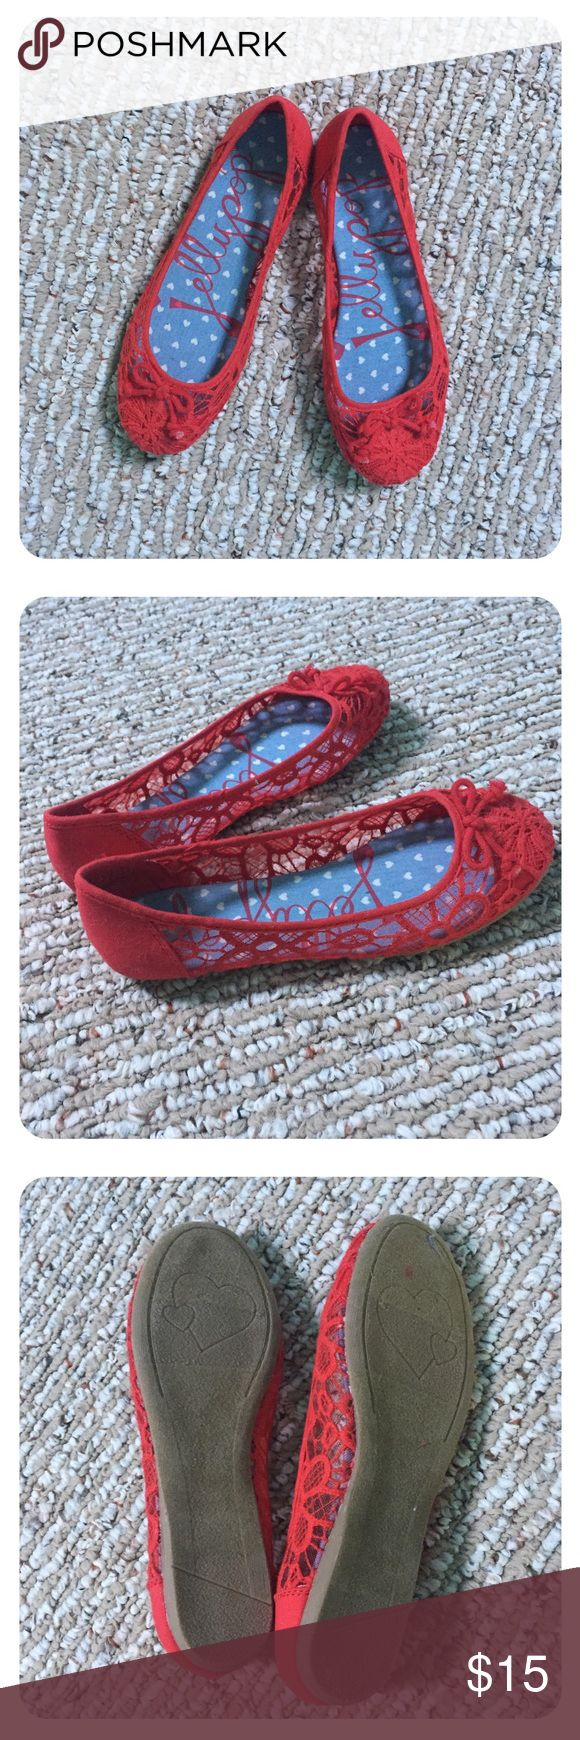 Adorable Red Jellypop Flats Red lacey Jellypop flats. Never worn. Perfect condition. Great with a dress! Offers welcome. Jellypop Shoes Flats & Loafers